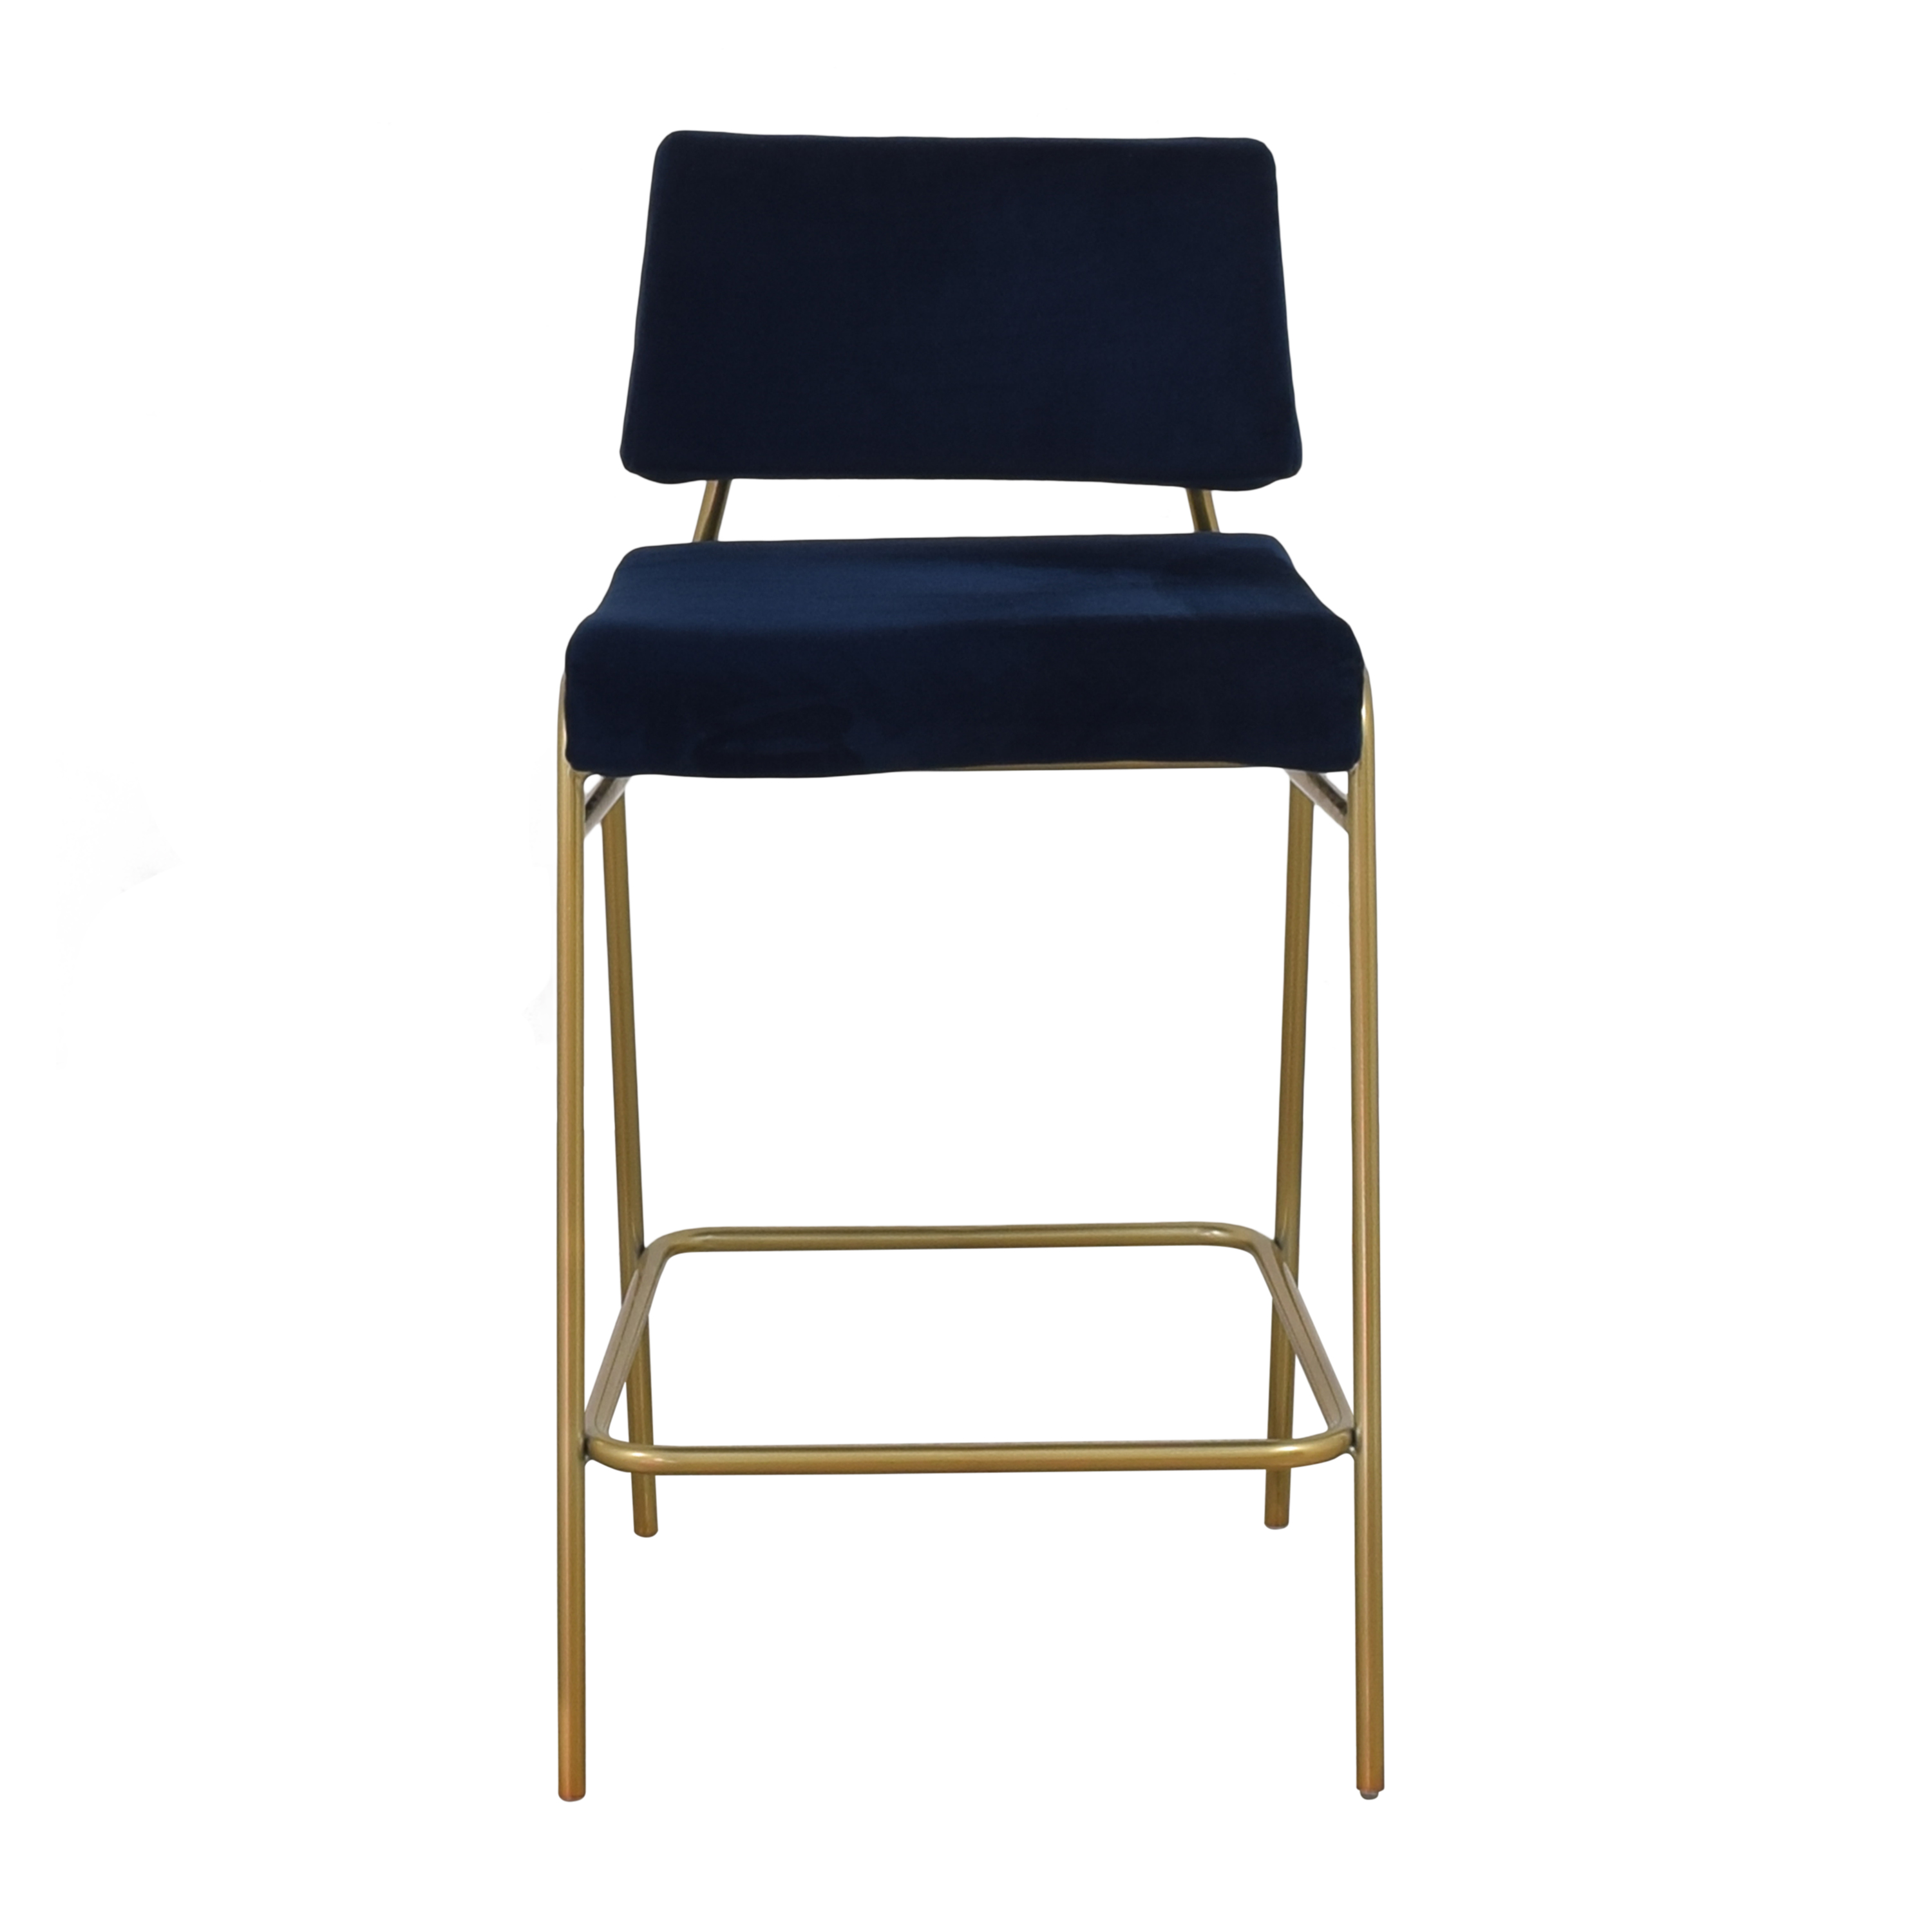 West Elm West Elm Wire Frame Counter stool dimensions